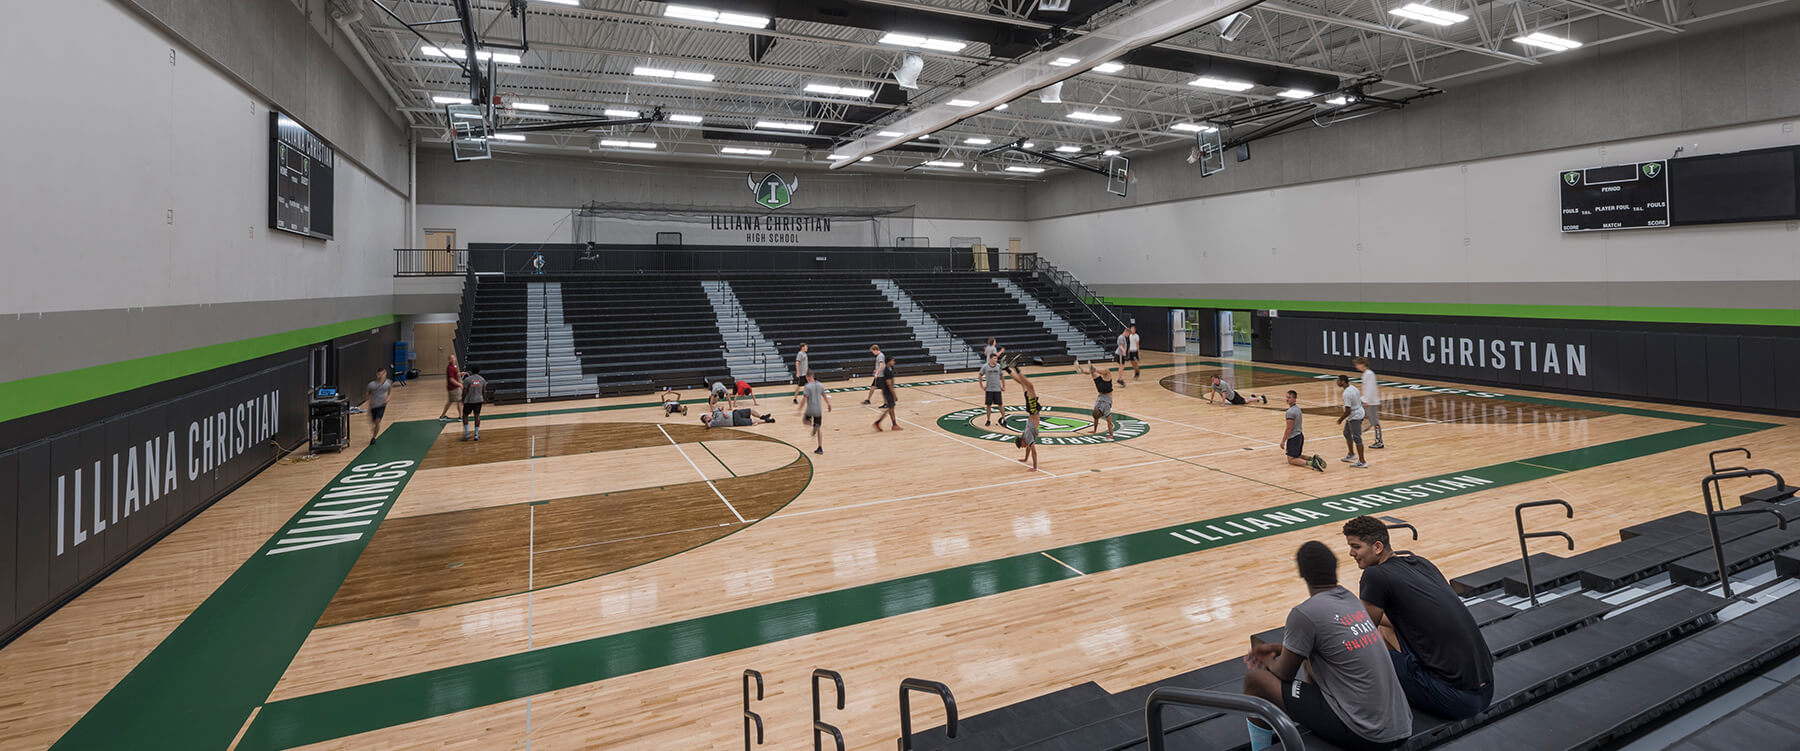 Illiana Christian High School gym